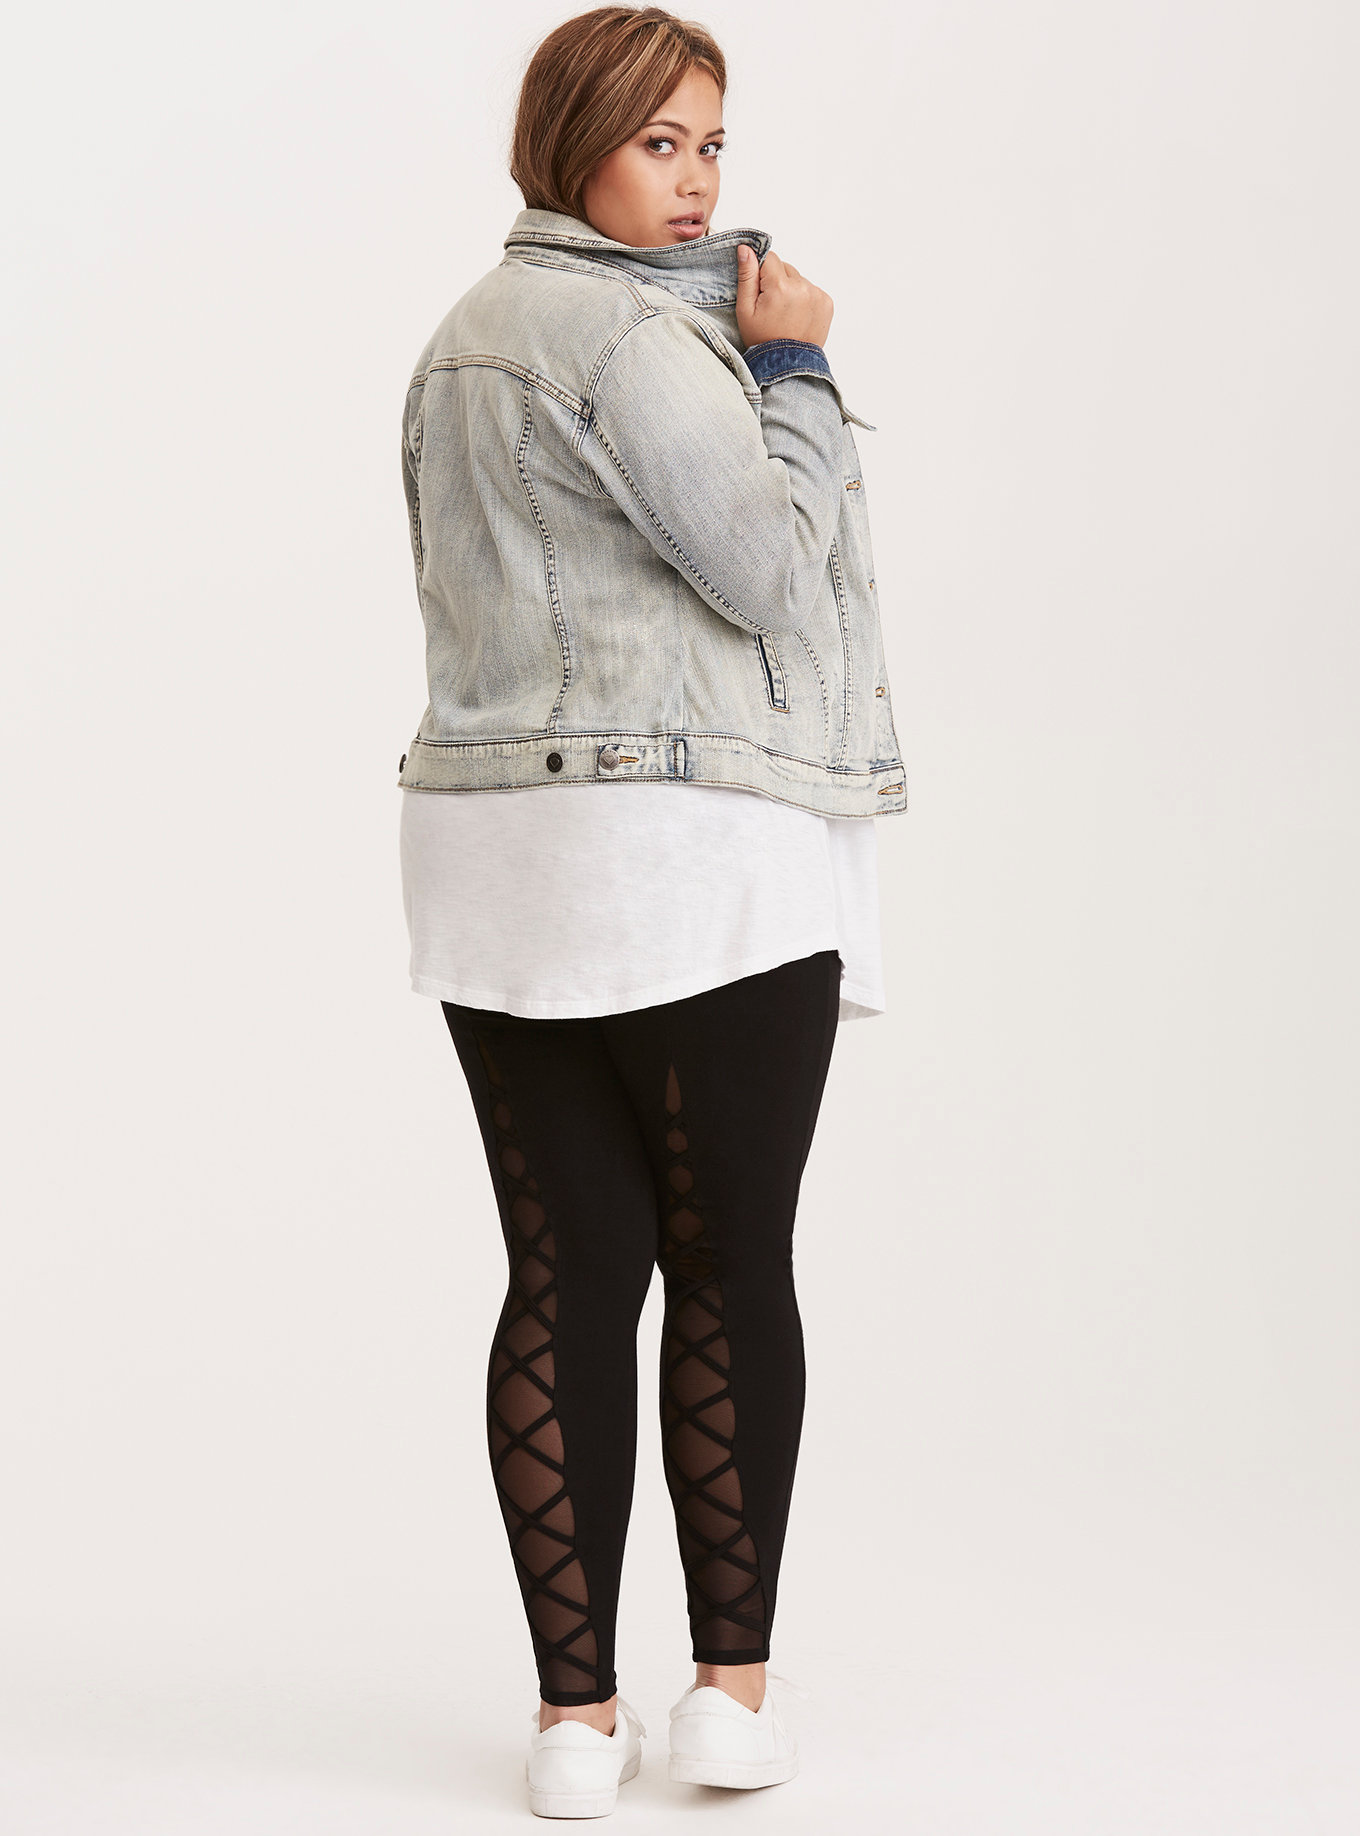 Lattice Back Leggings from Torrid